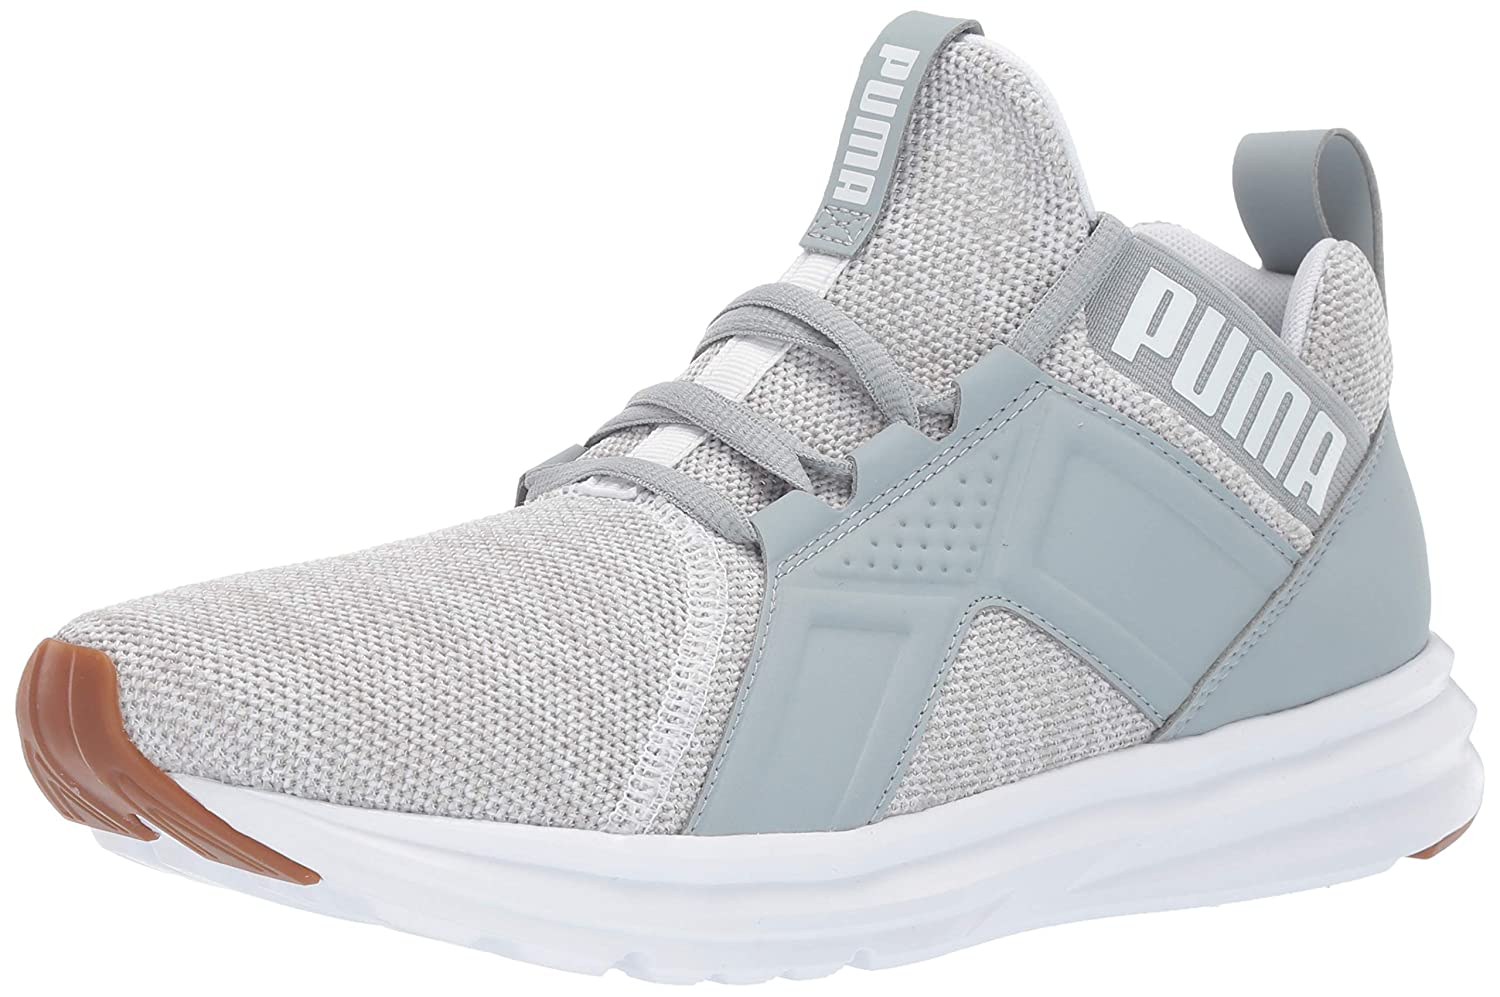 845ca6ae0b Puma Men's Rubber Sole Enzo Cross-Trainer Shoes: Buy Online at Low Prices  in India - Amazon.in